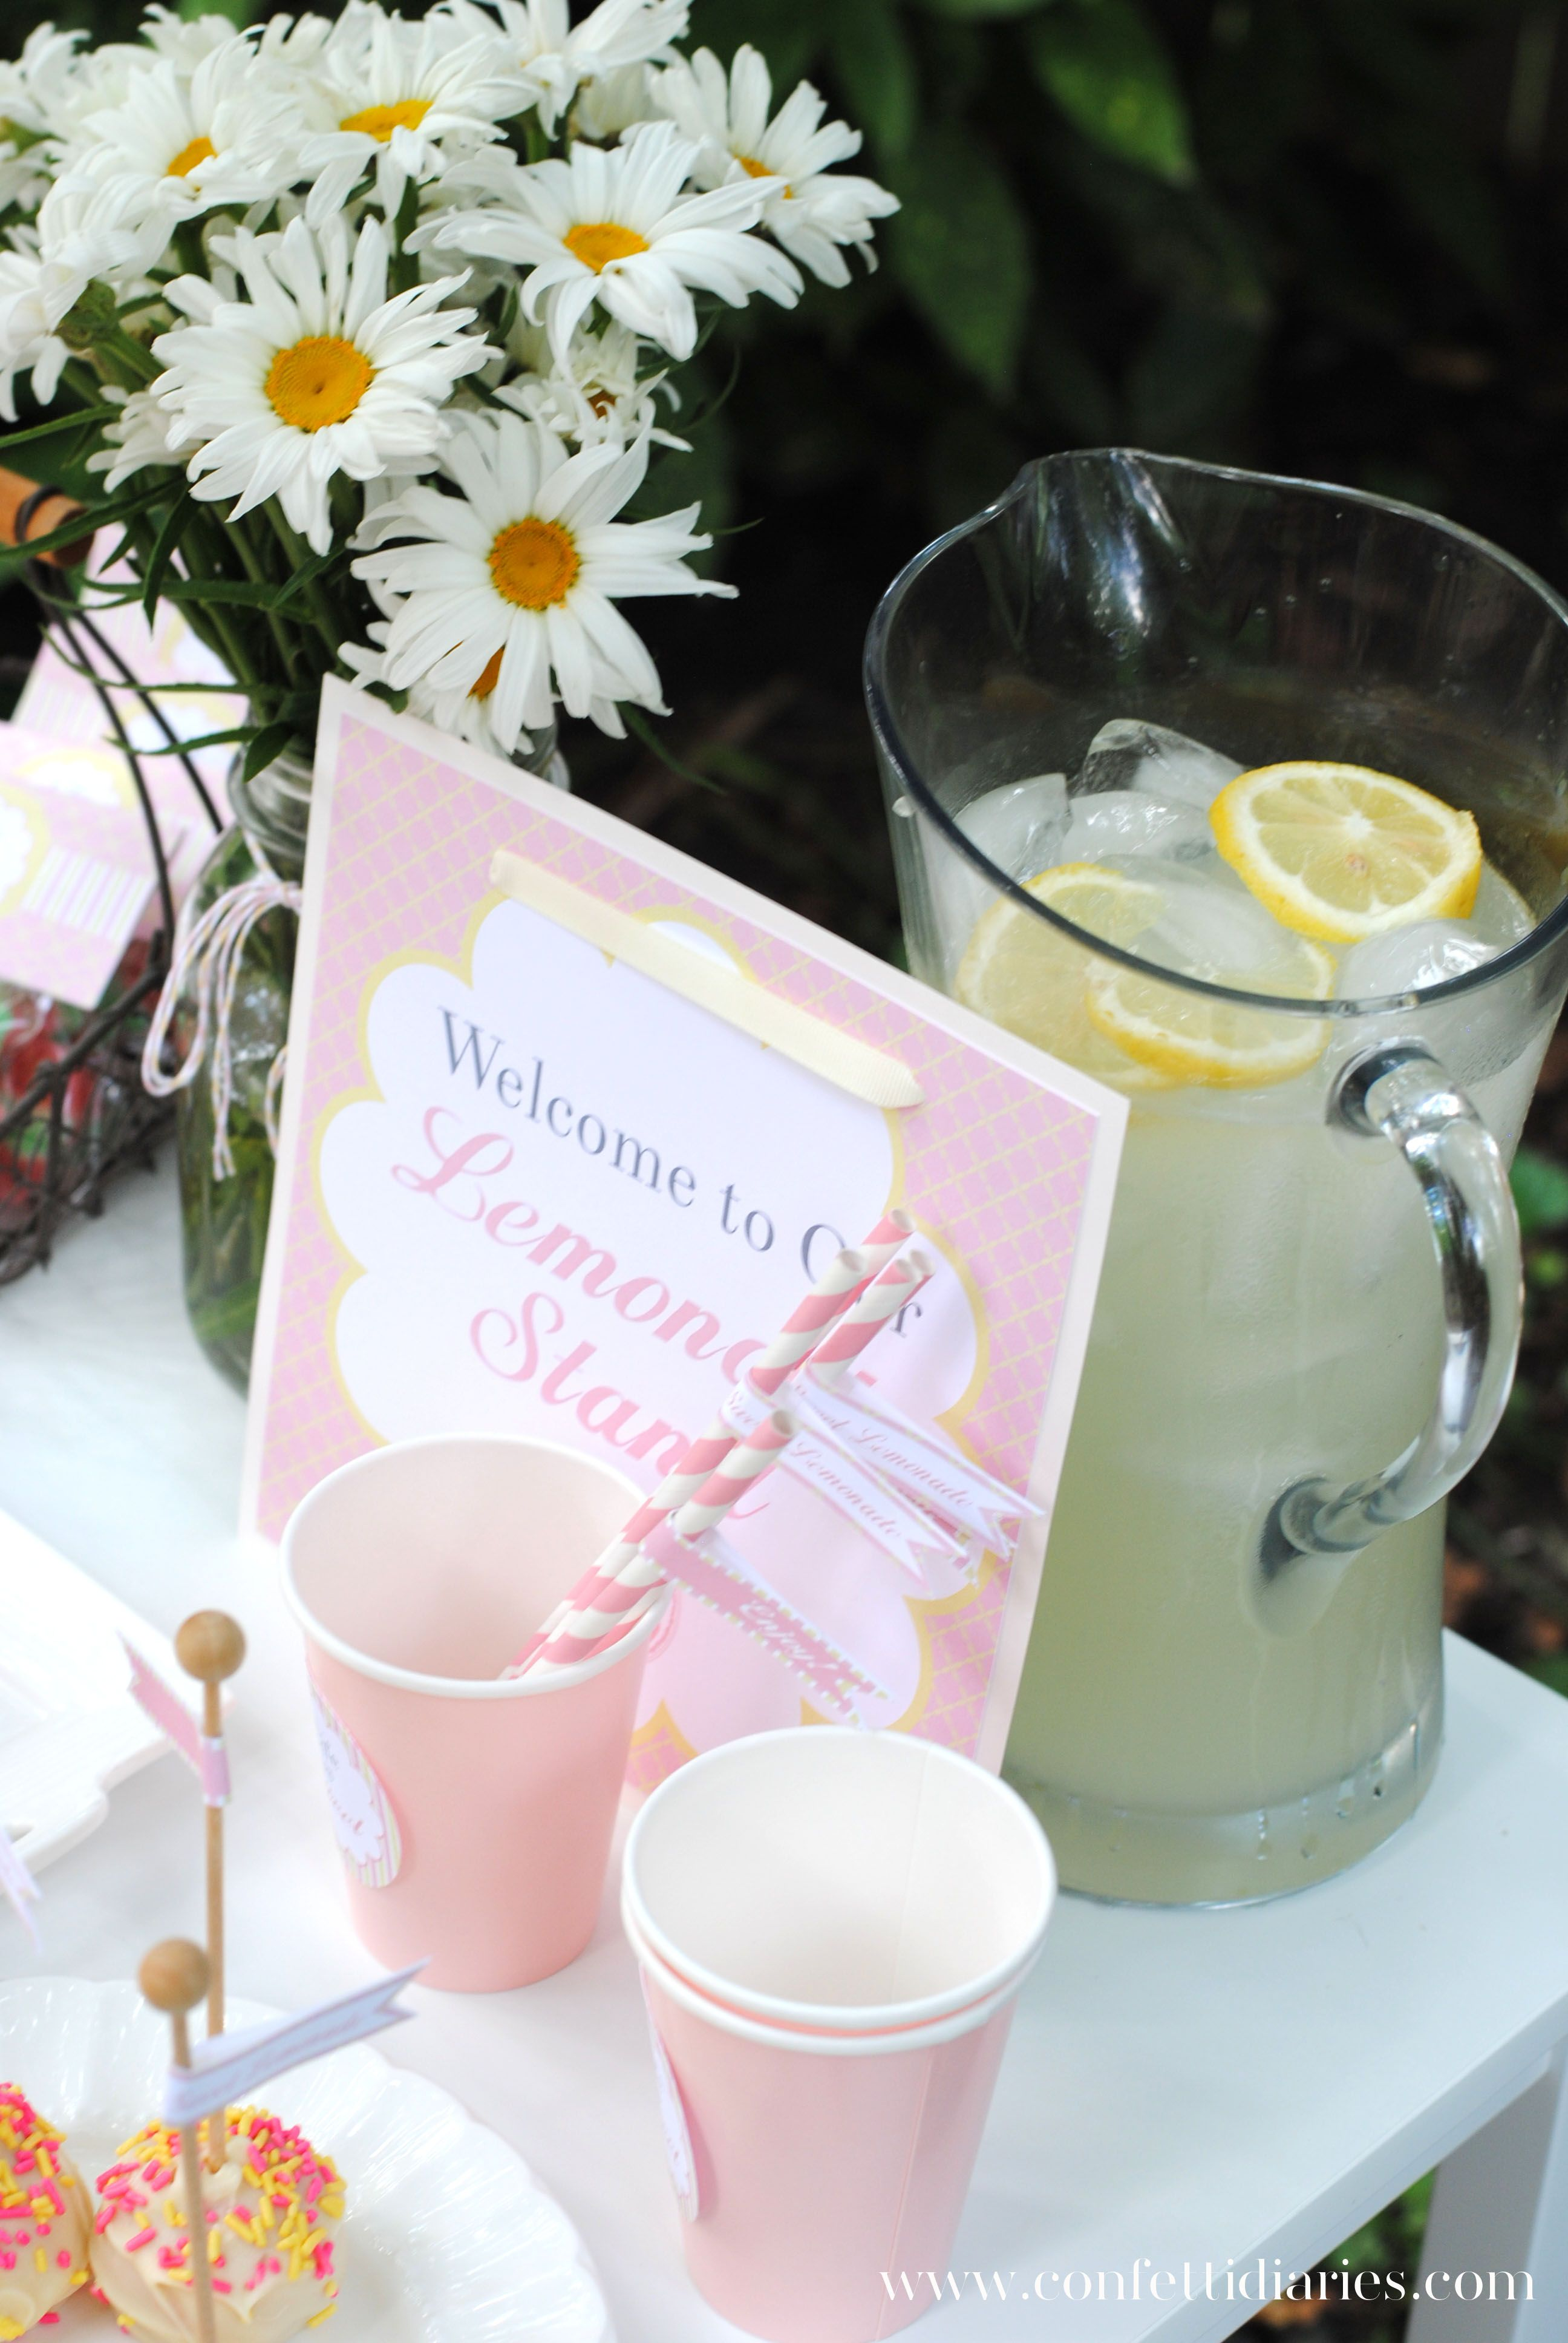 Loving this Pink Lemonade Stand Playdate by Katrina's Paperie   http://doublefunparties.com/2014/07/07/guest-party-pink-lemonade-play-date-party/